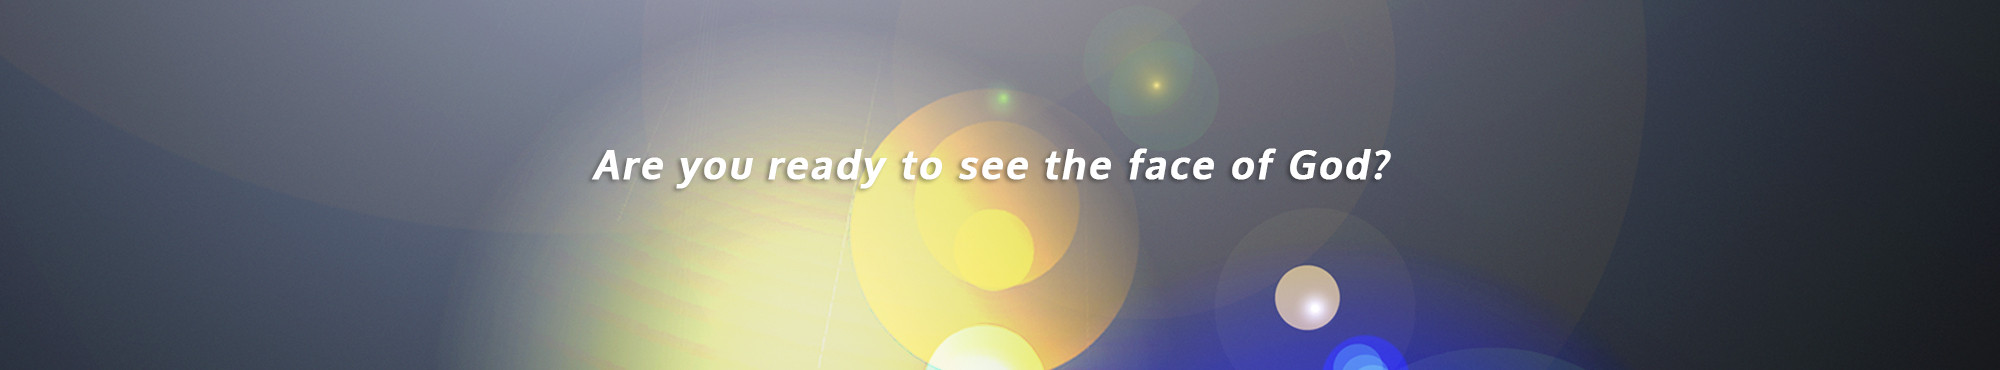 Are you ready to see the face of God? | The Lost Secret of Immortality Site Banner